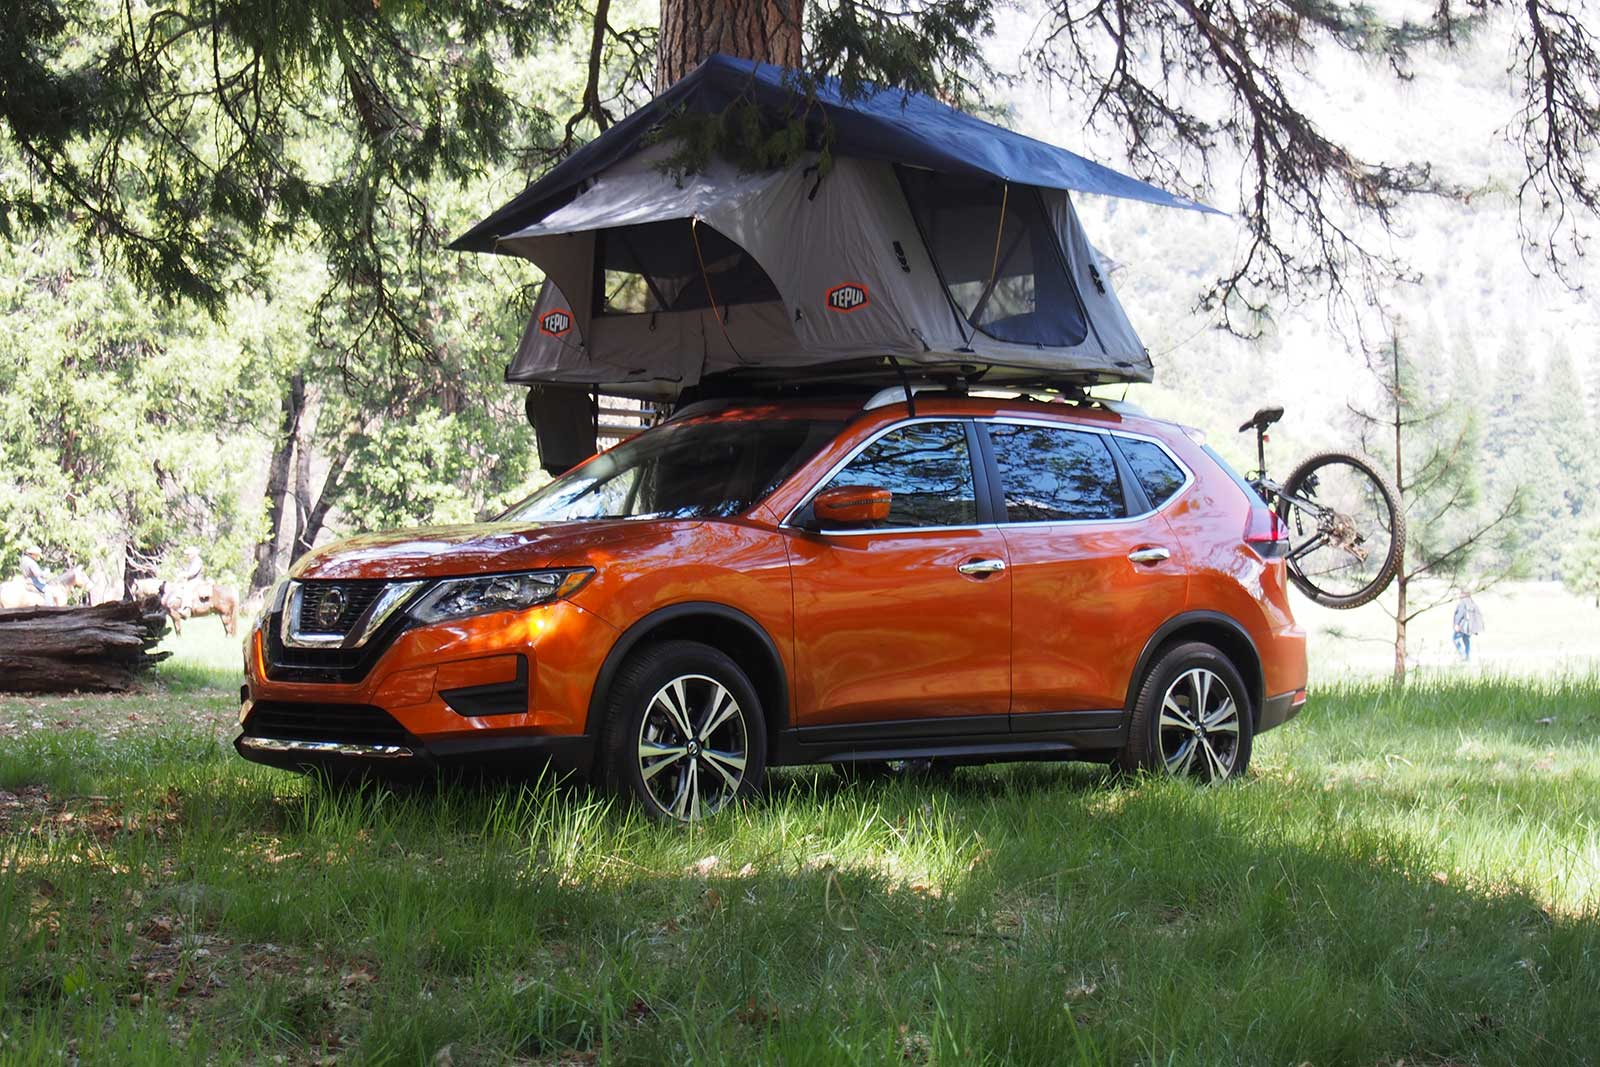 Fast Awd Cars >> 2019 Nissan Rogue Review - AutoGuide.com